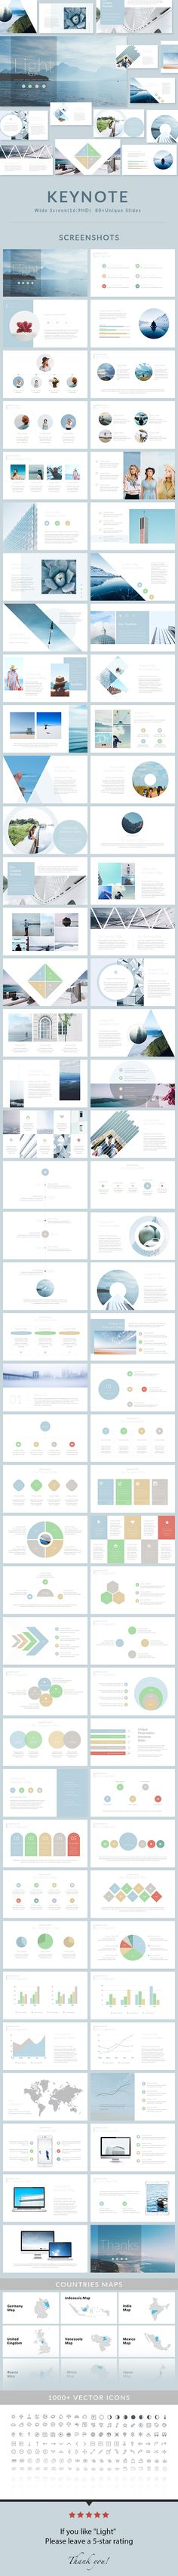 Light - Keynote Presentation Template